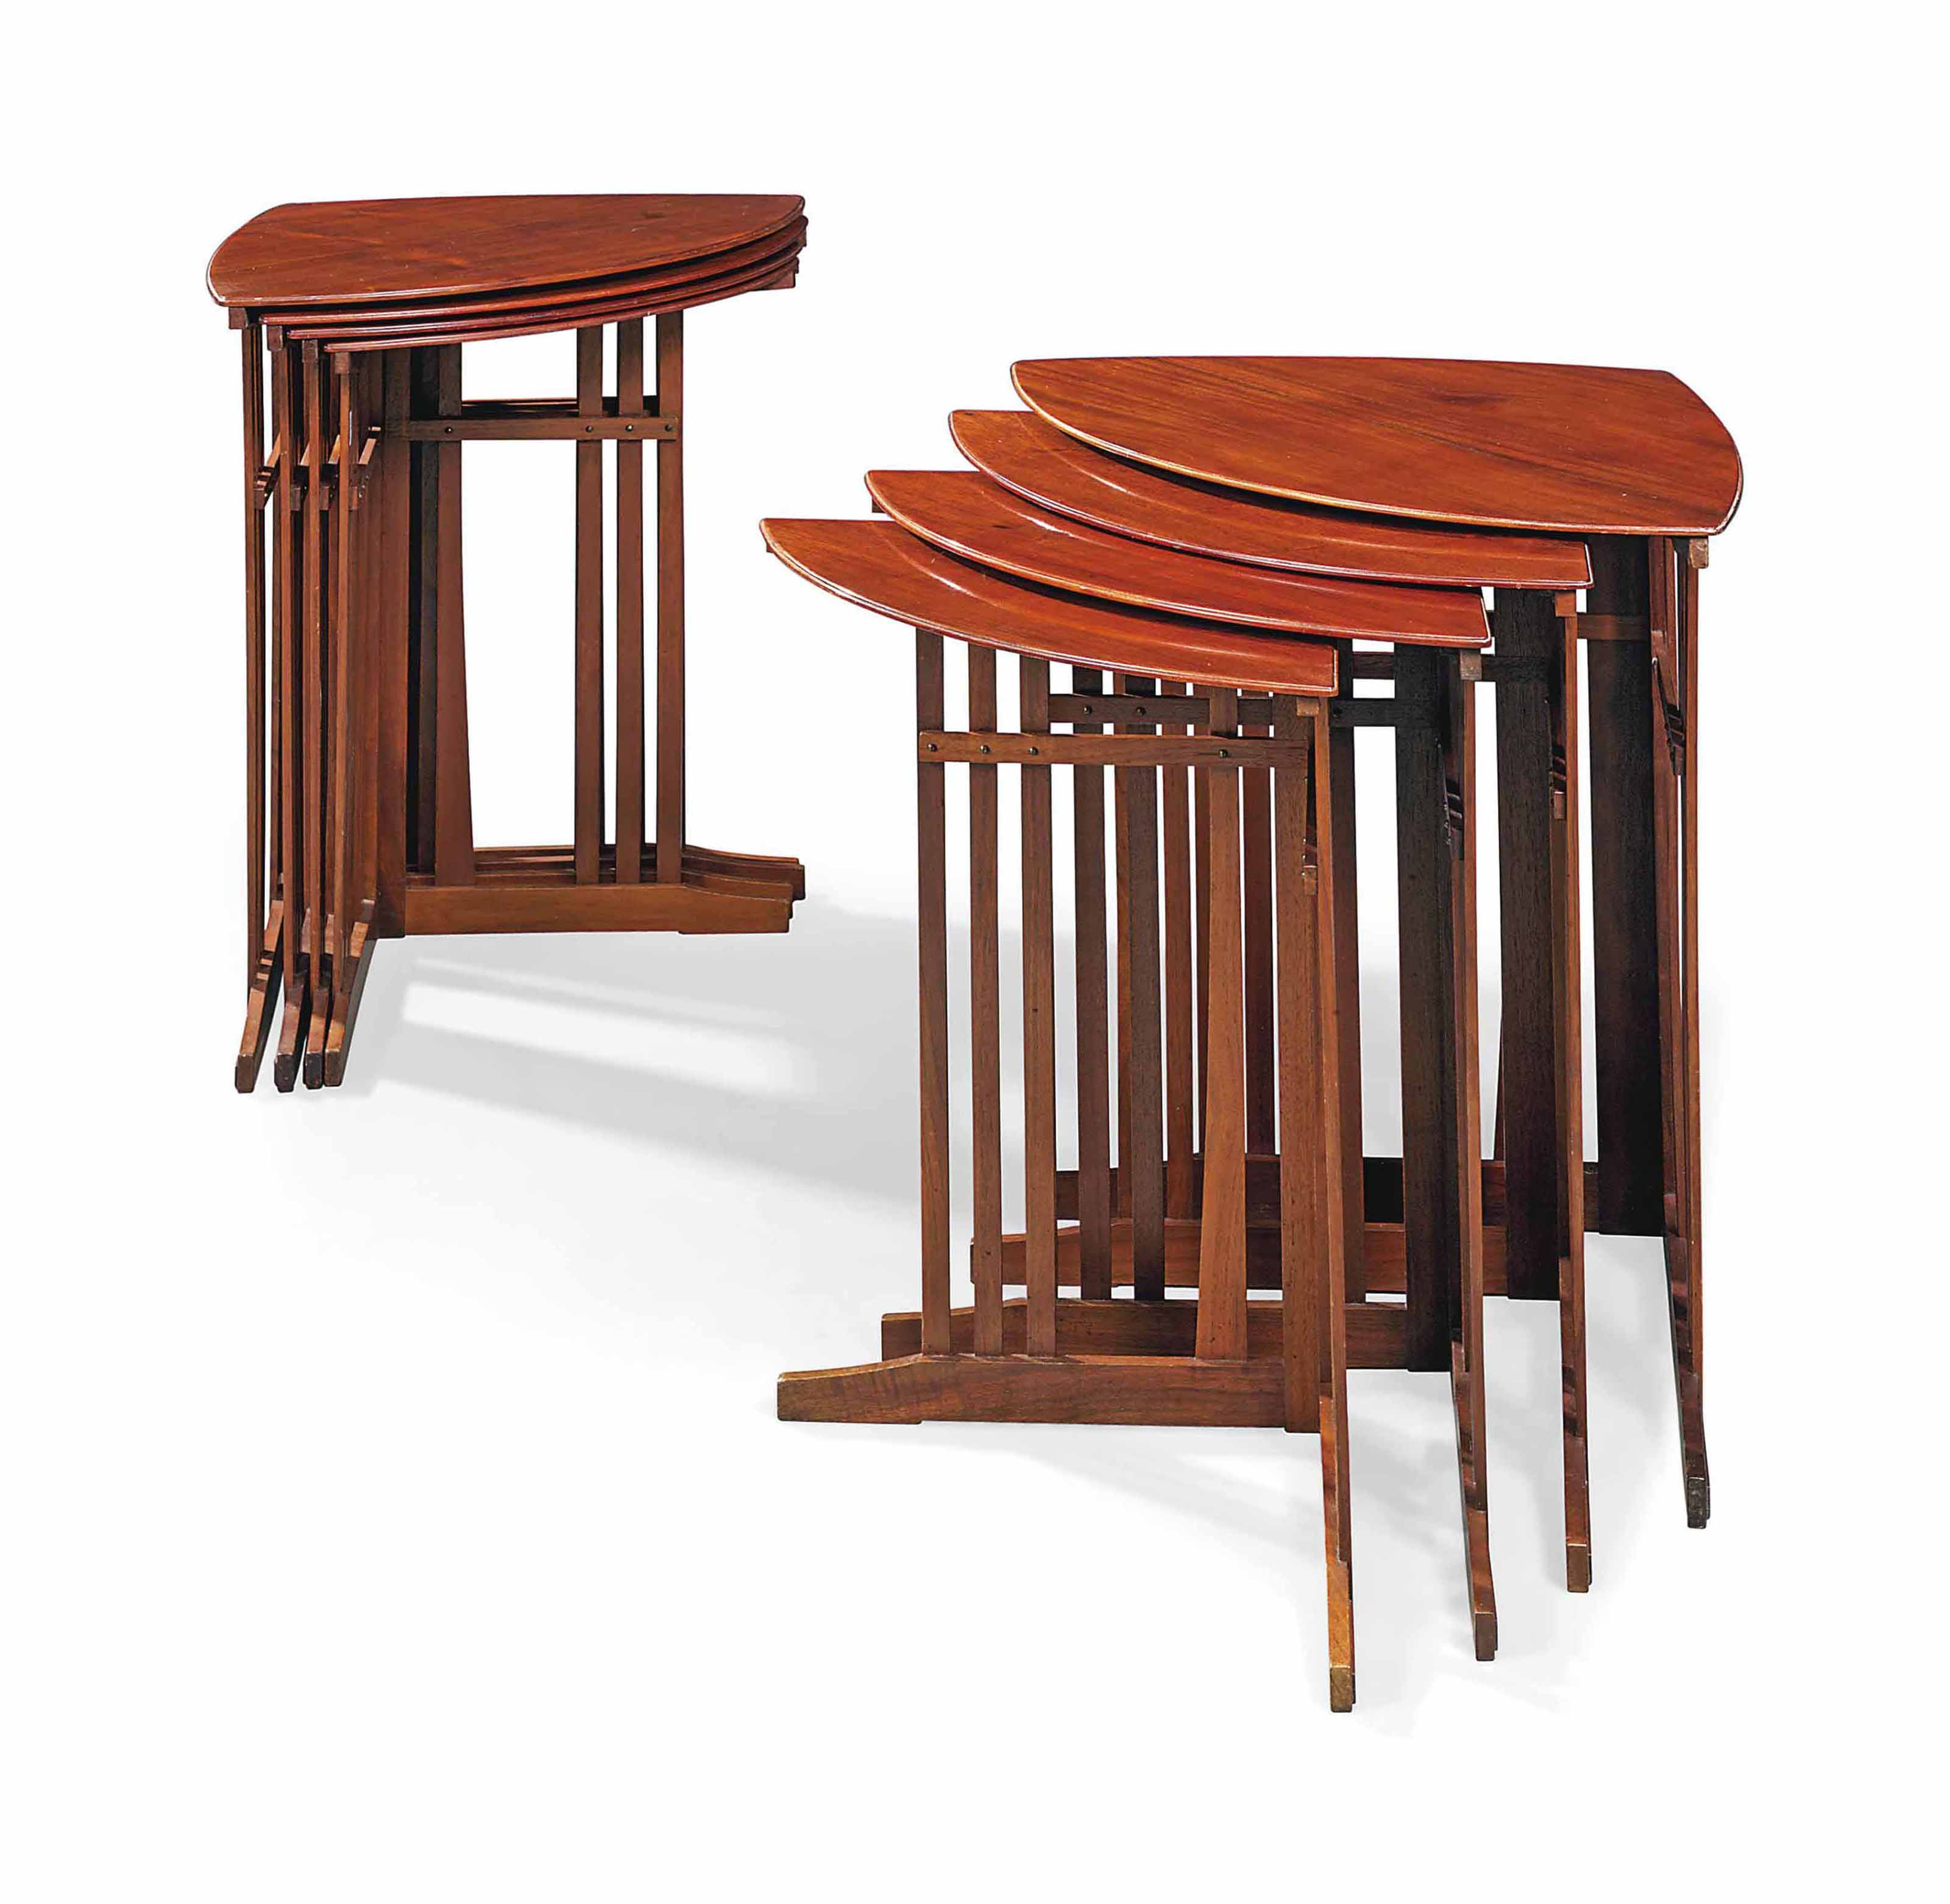 TWO SETS OF ART NOUVEAU MAHOGANY QUARTETTO TABLES